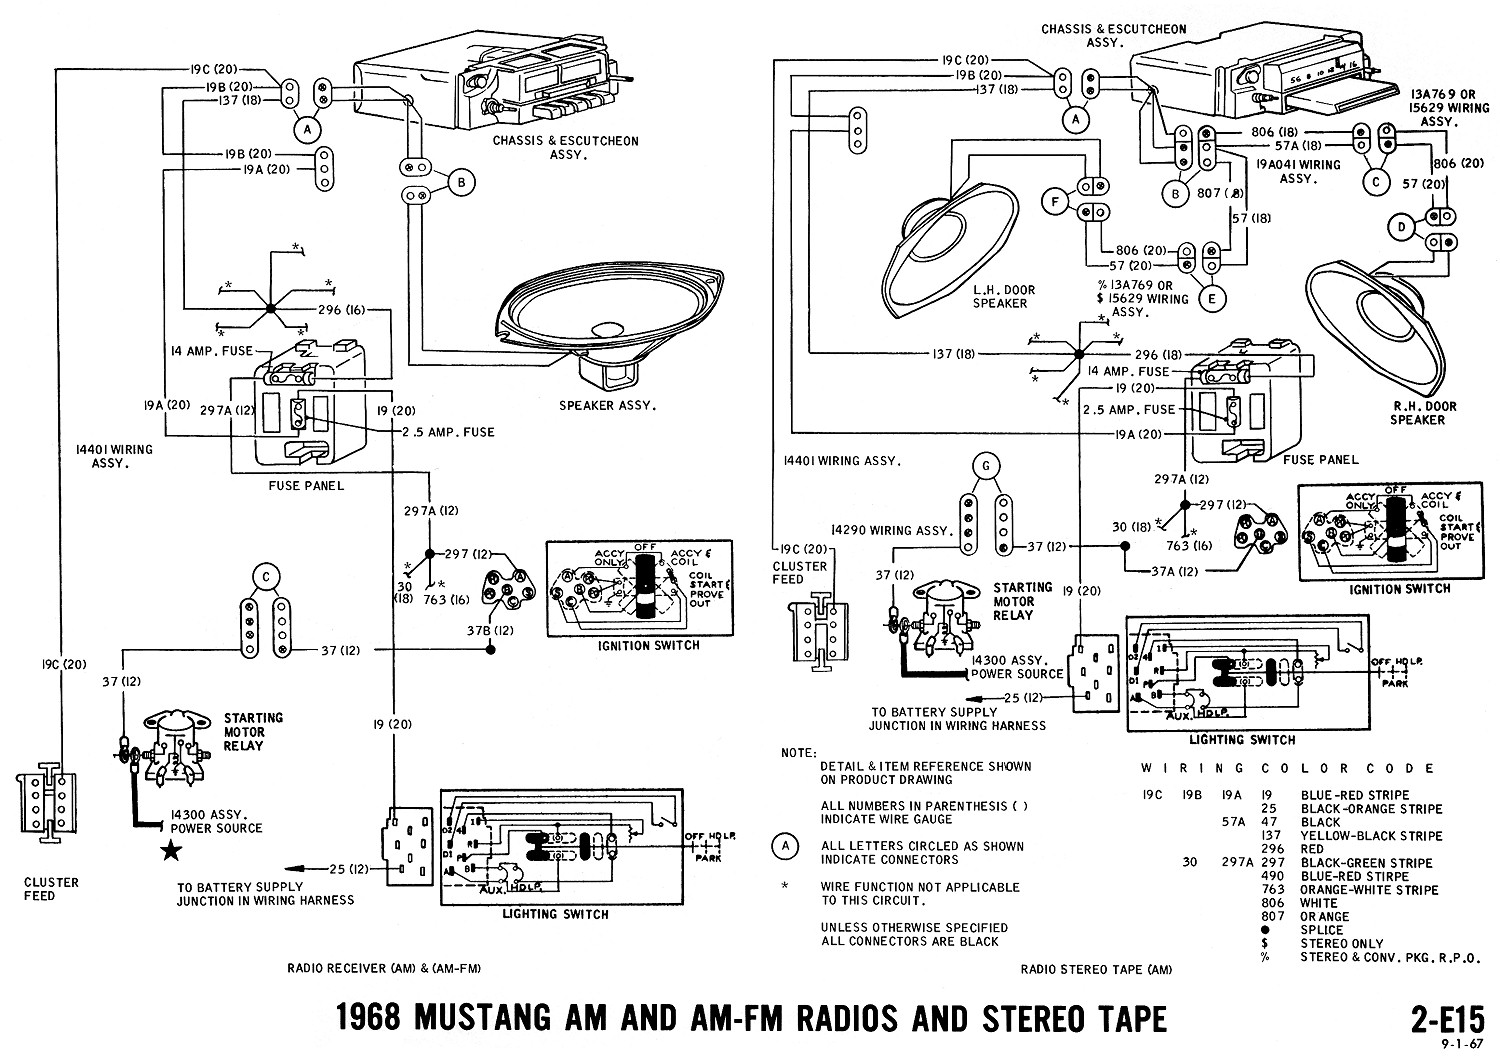 66 chevy heater wiring diagram with 1968 Mustang Wiring Diagrams on 1968 Mustang Vacuum Diagrams additionally Wiring Diagrams All Years Chevette Forum as well Schematics h moreover 396 Big Block Chevy Engine Diagram additionally Wiring For 1966 Mustang.